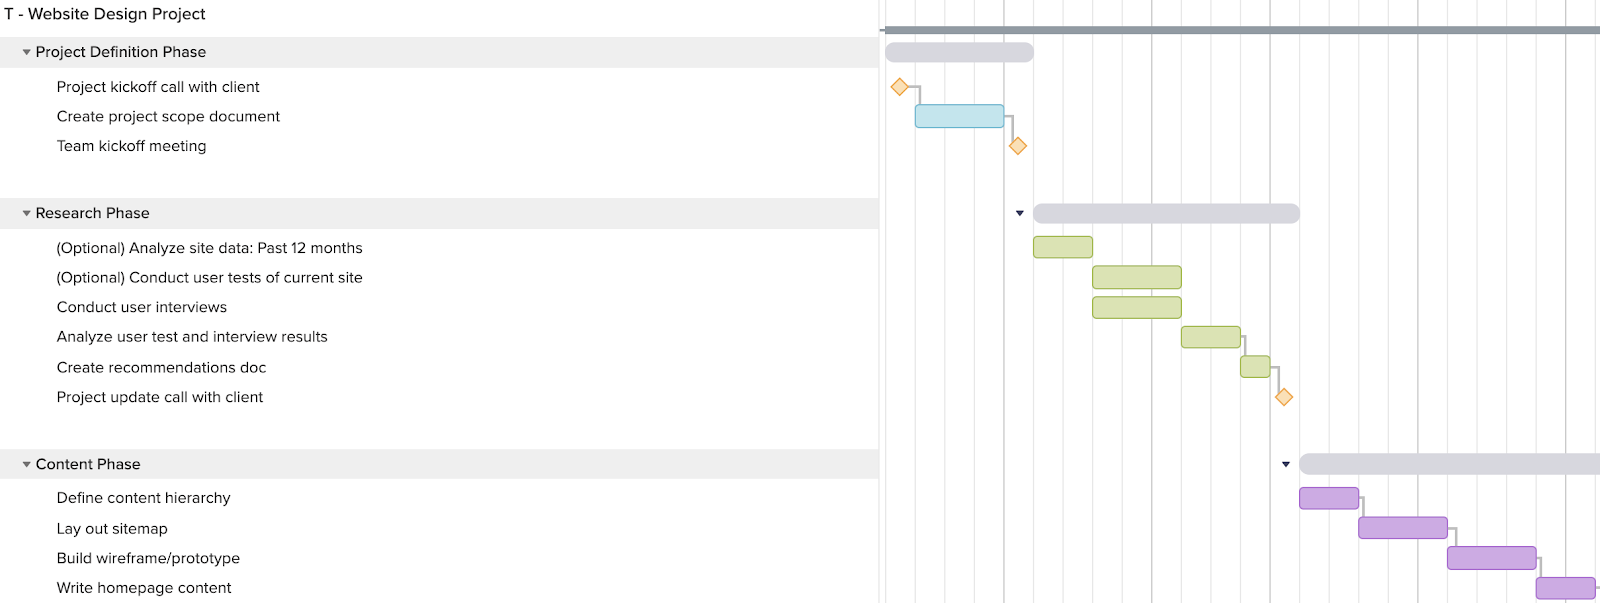 web design project gantt chart template